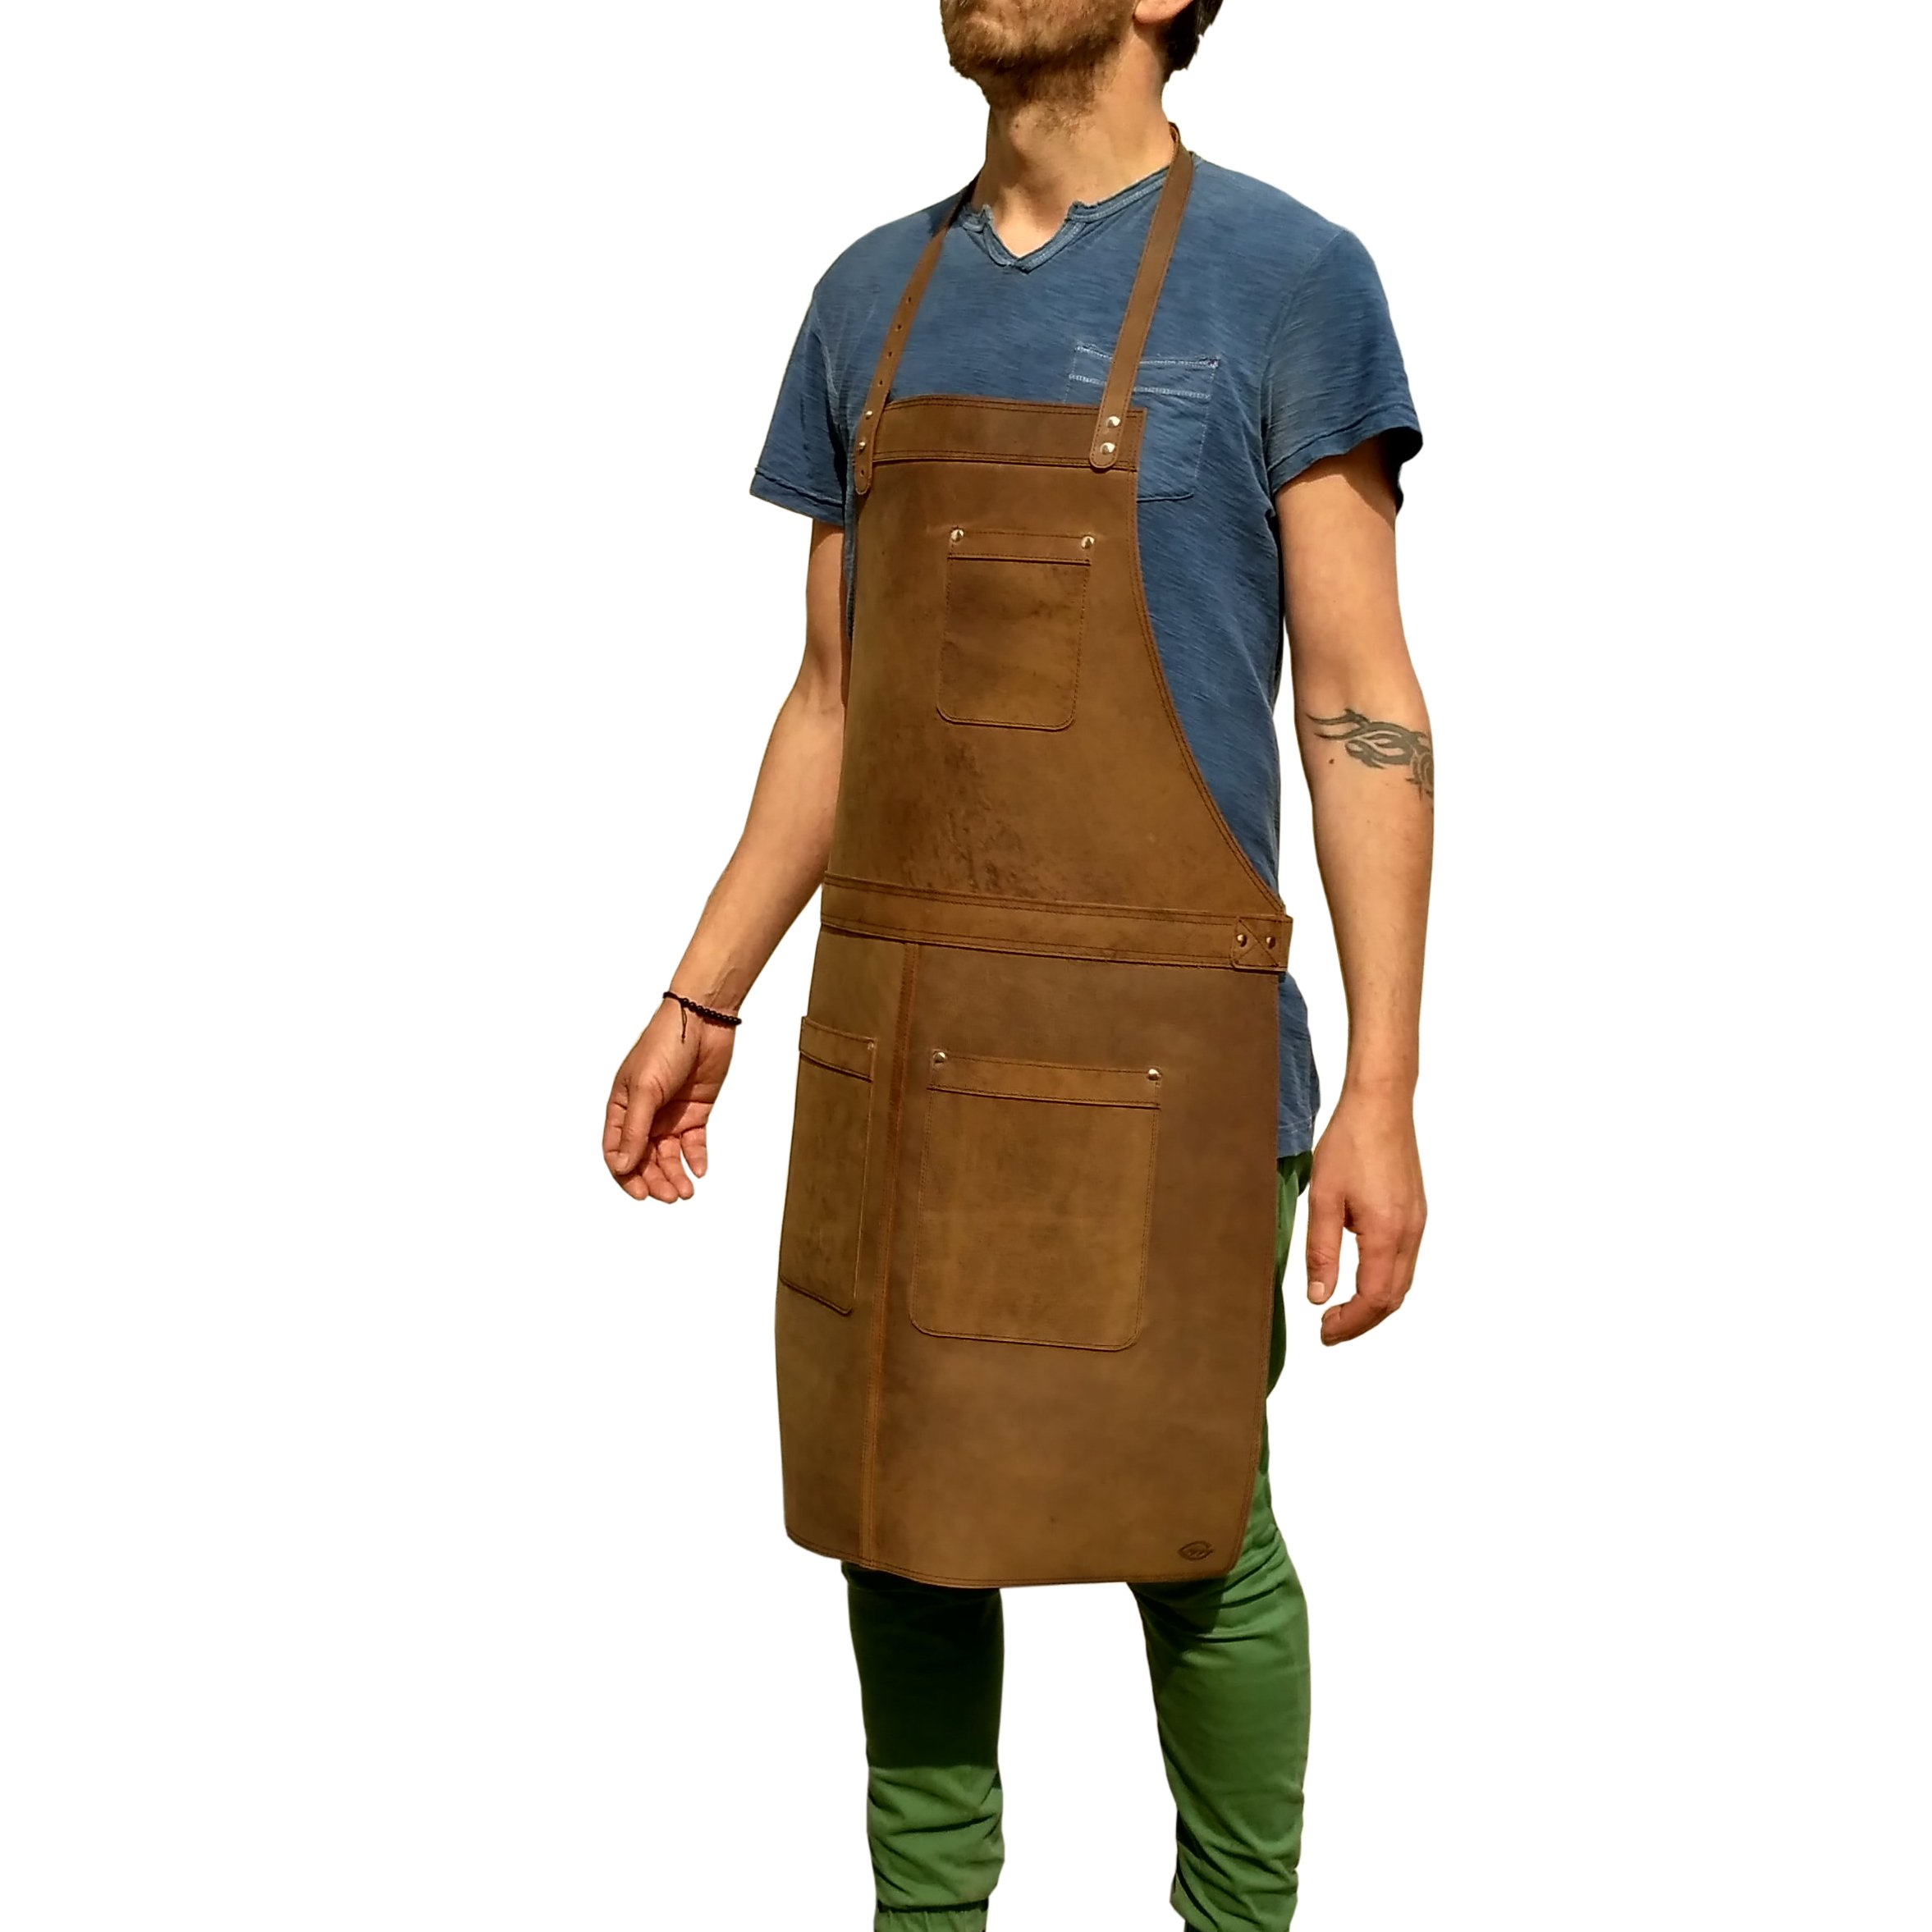 Ultimate Leather Apron for Professionals. from One Leaf (Silver Color Hardware)